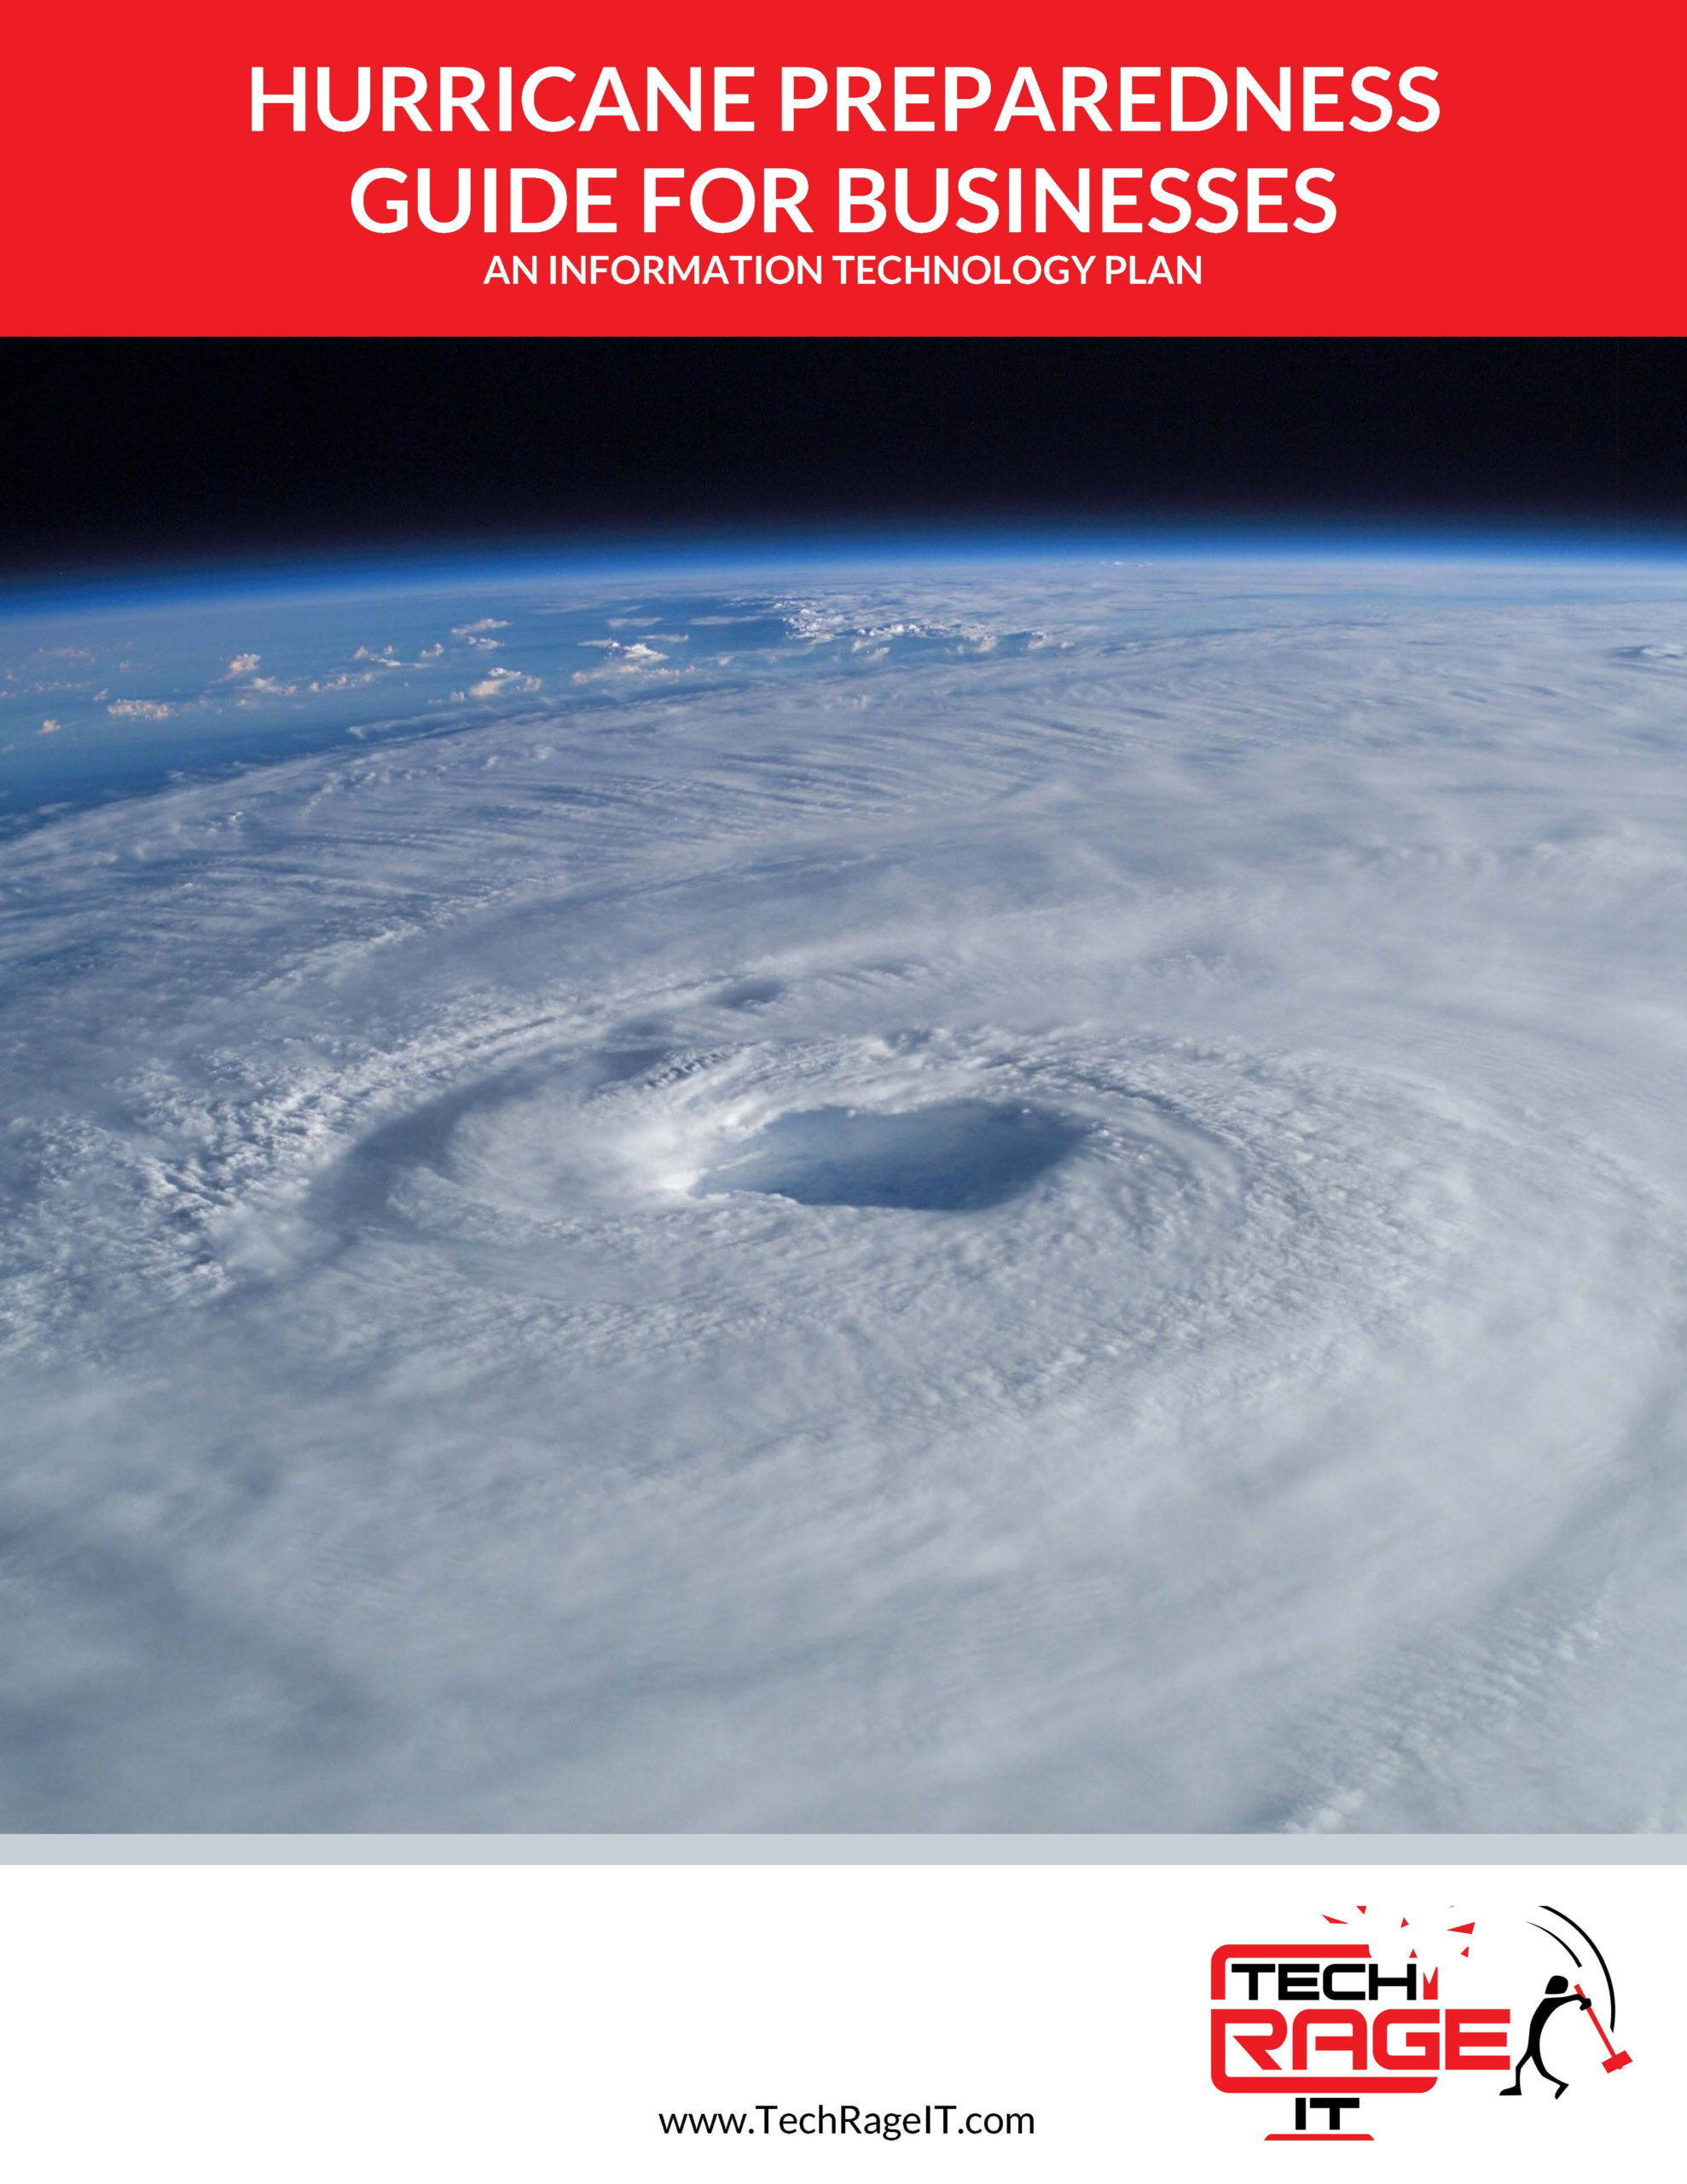 TechRageIT_Hurricane-Preparedness-Guide-for-Businesses-1_Page_1-min-scaled